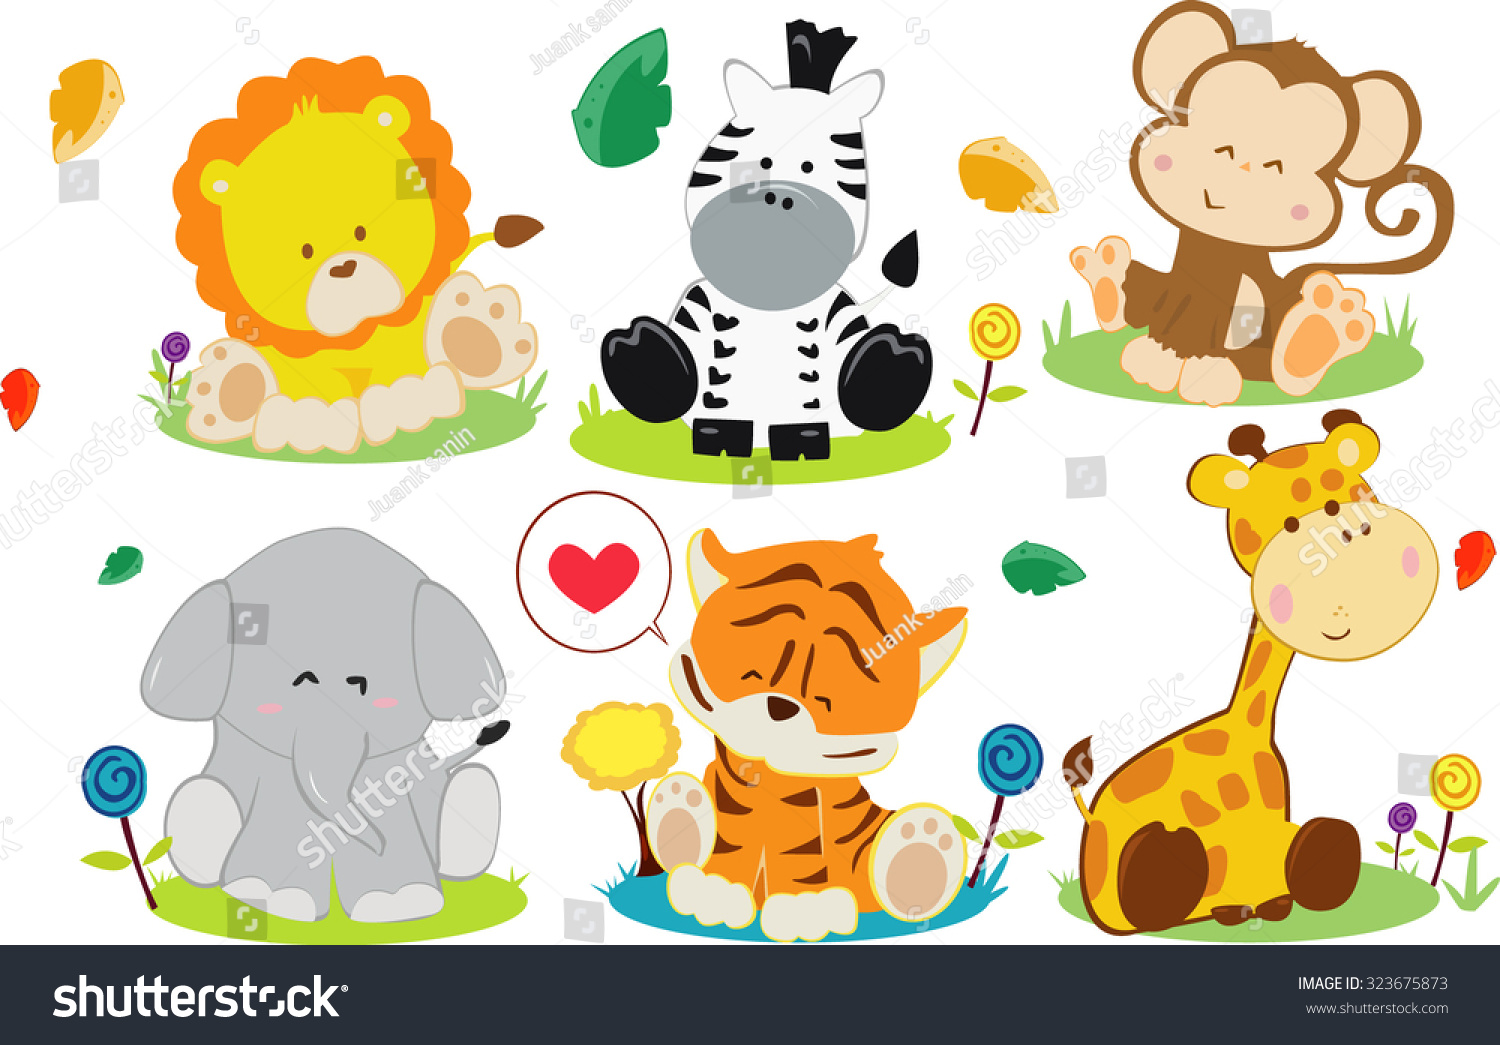 Cartoon baby animals free vector download 18522 Free